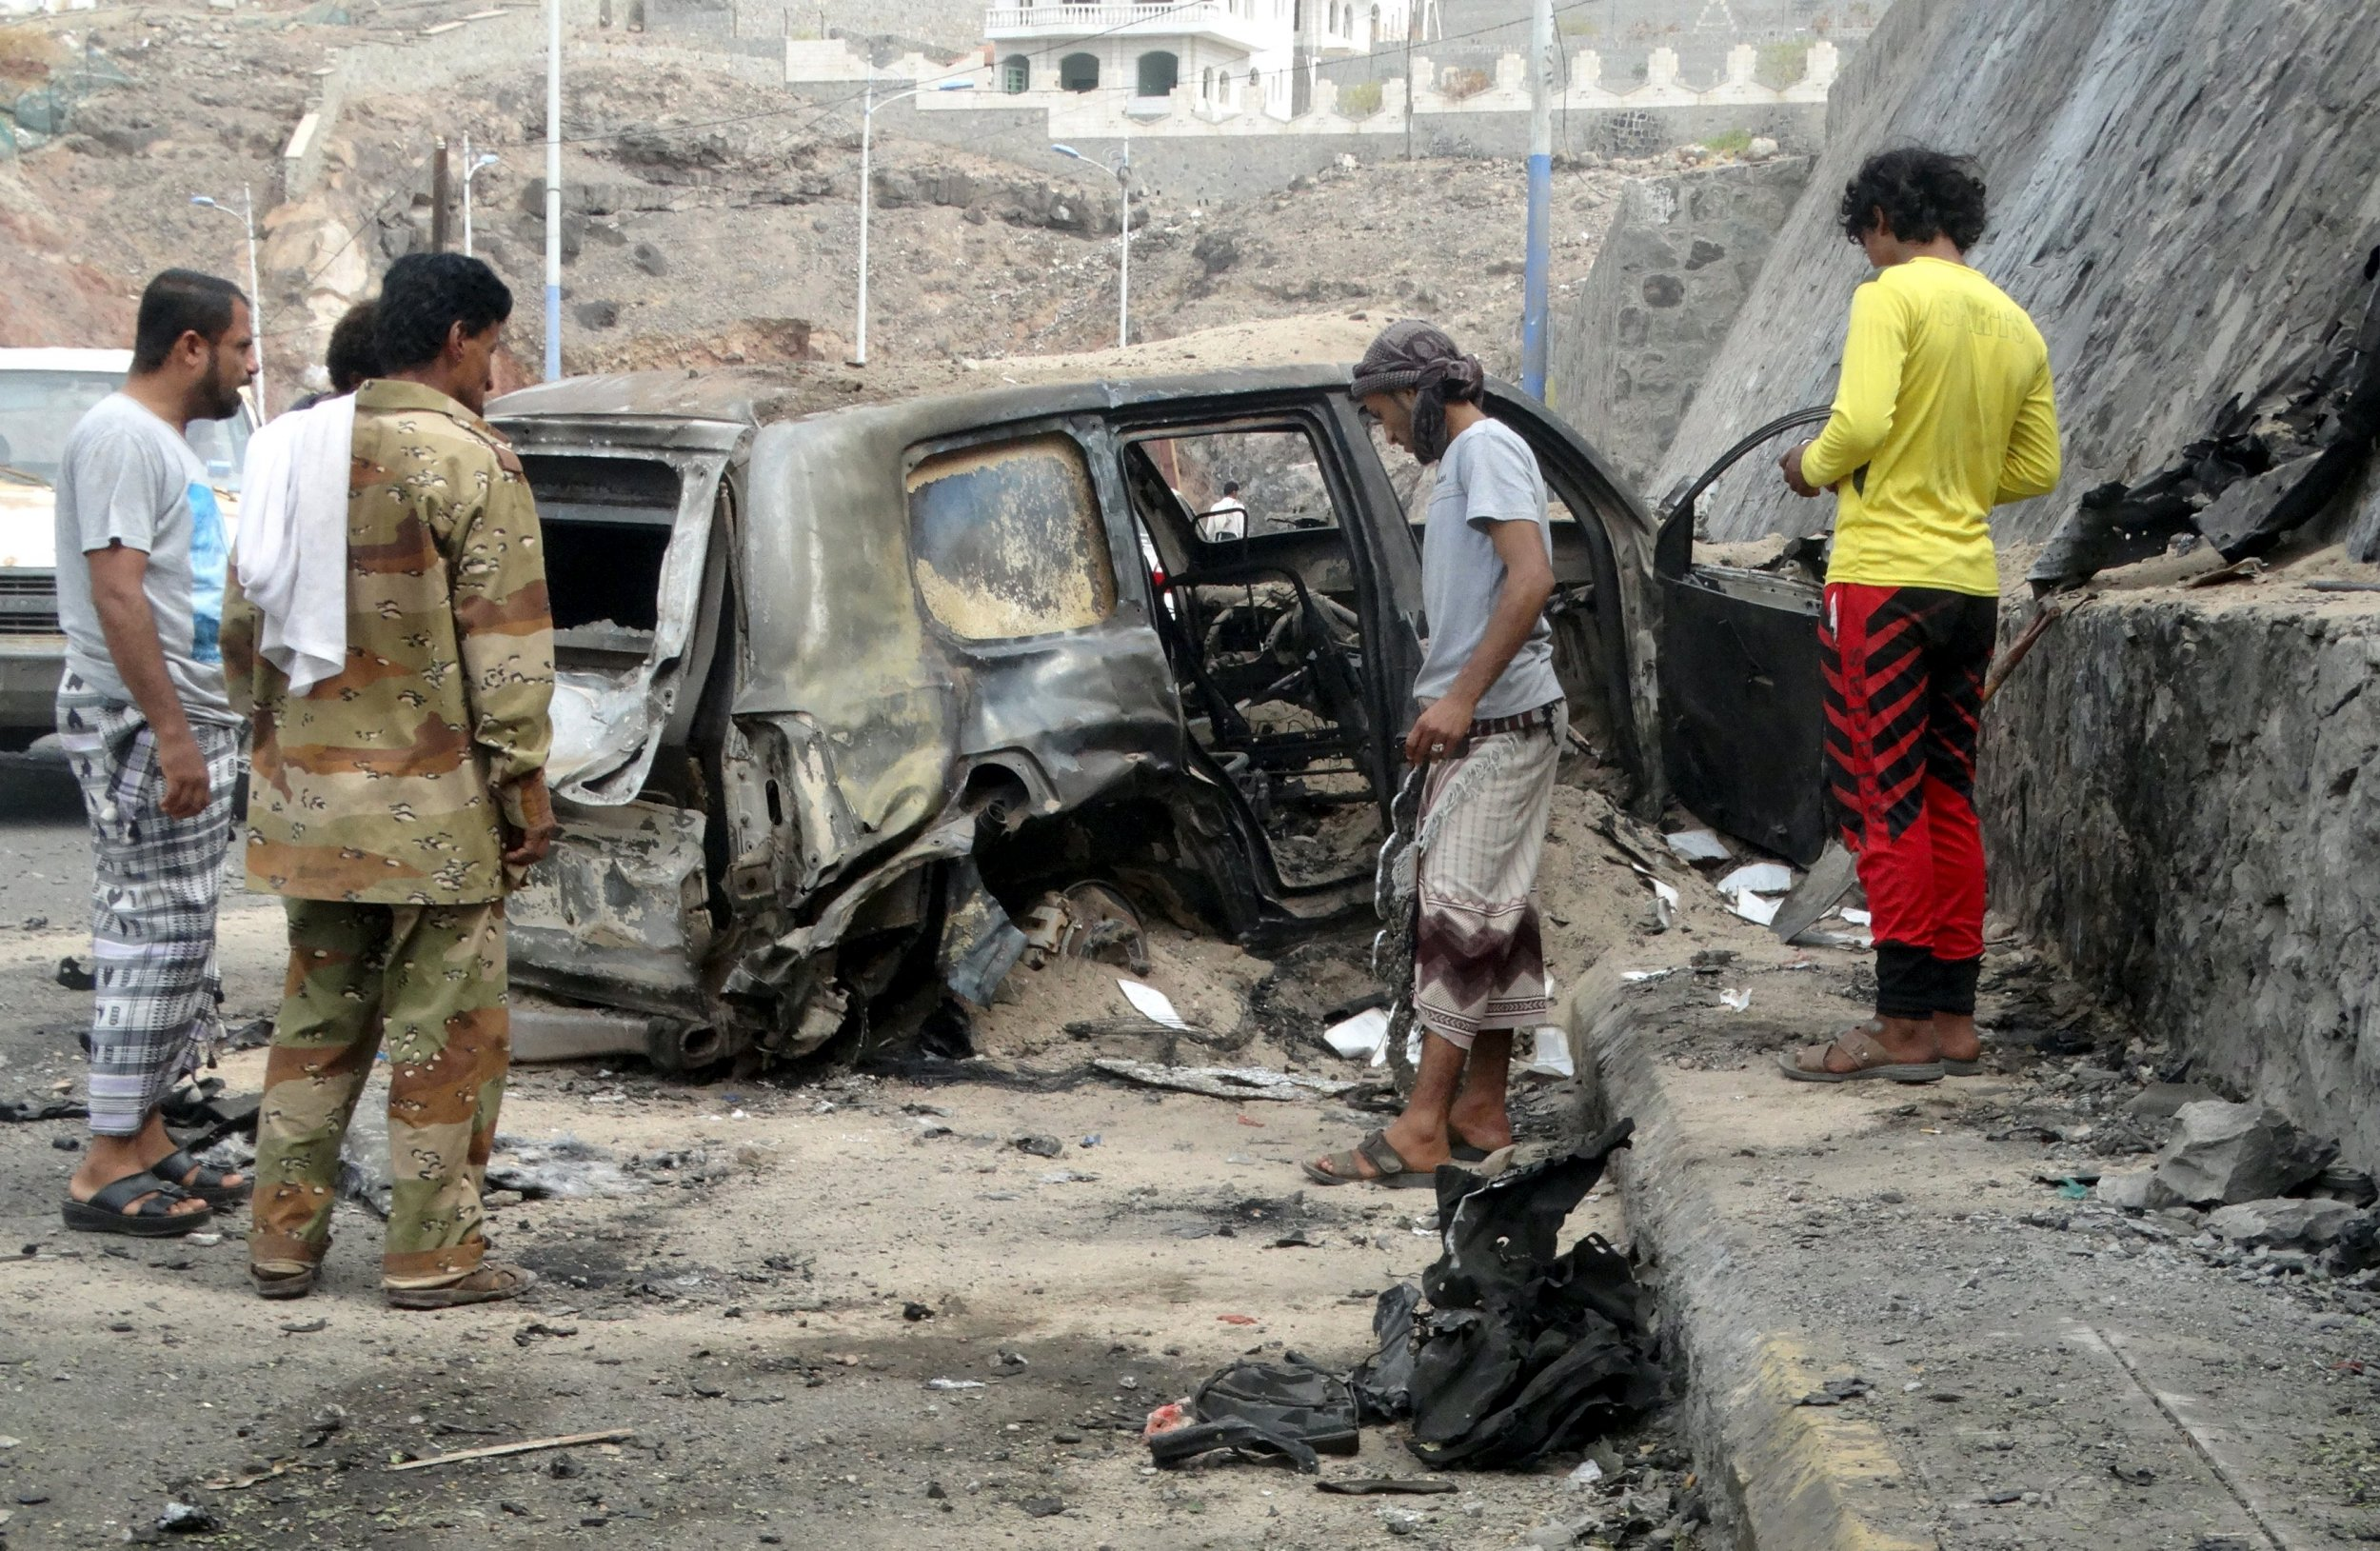 Islamic State claims responsibility for Aden Car bomb